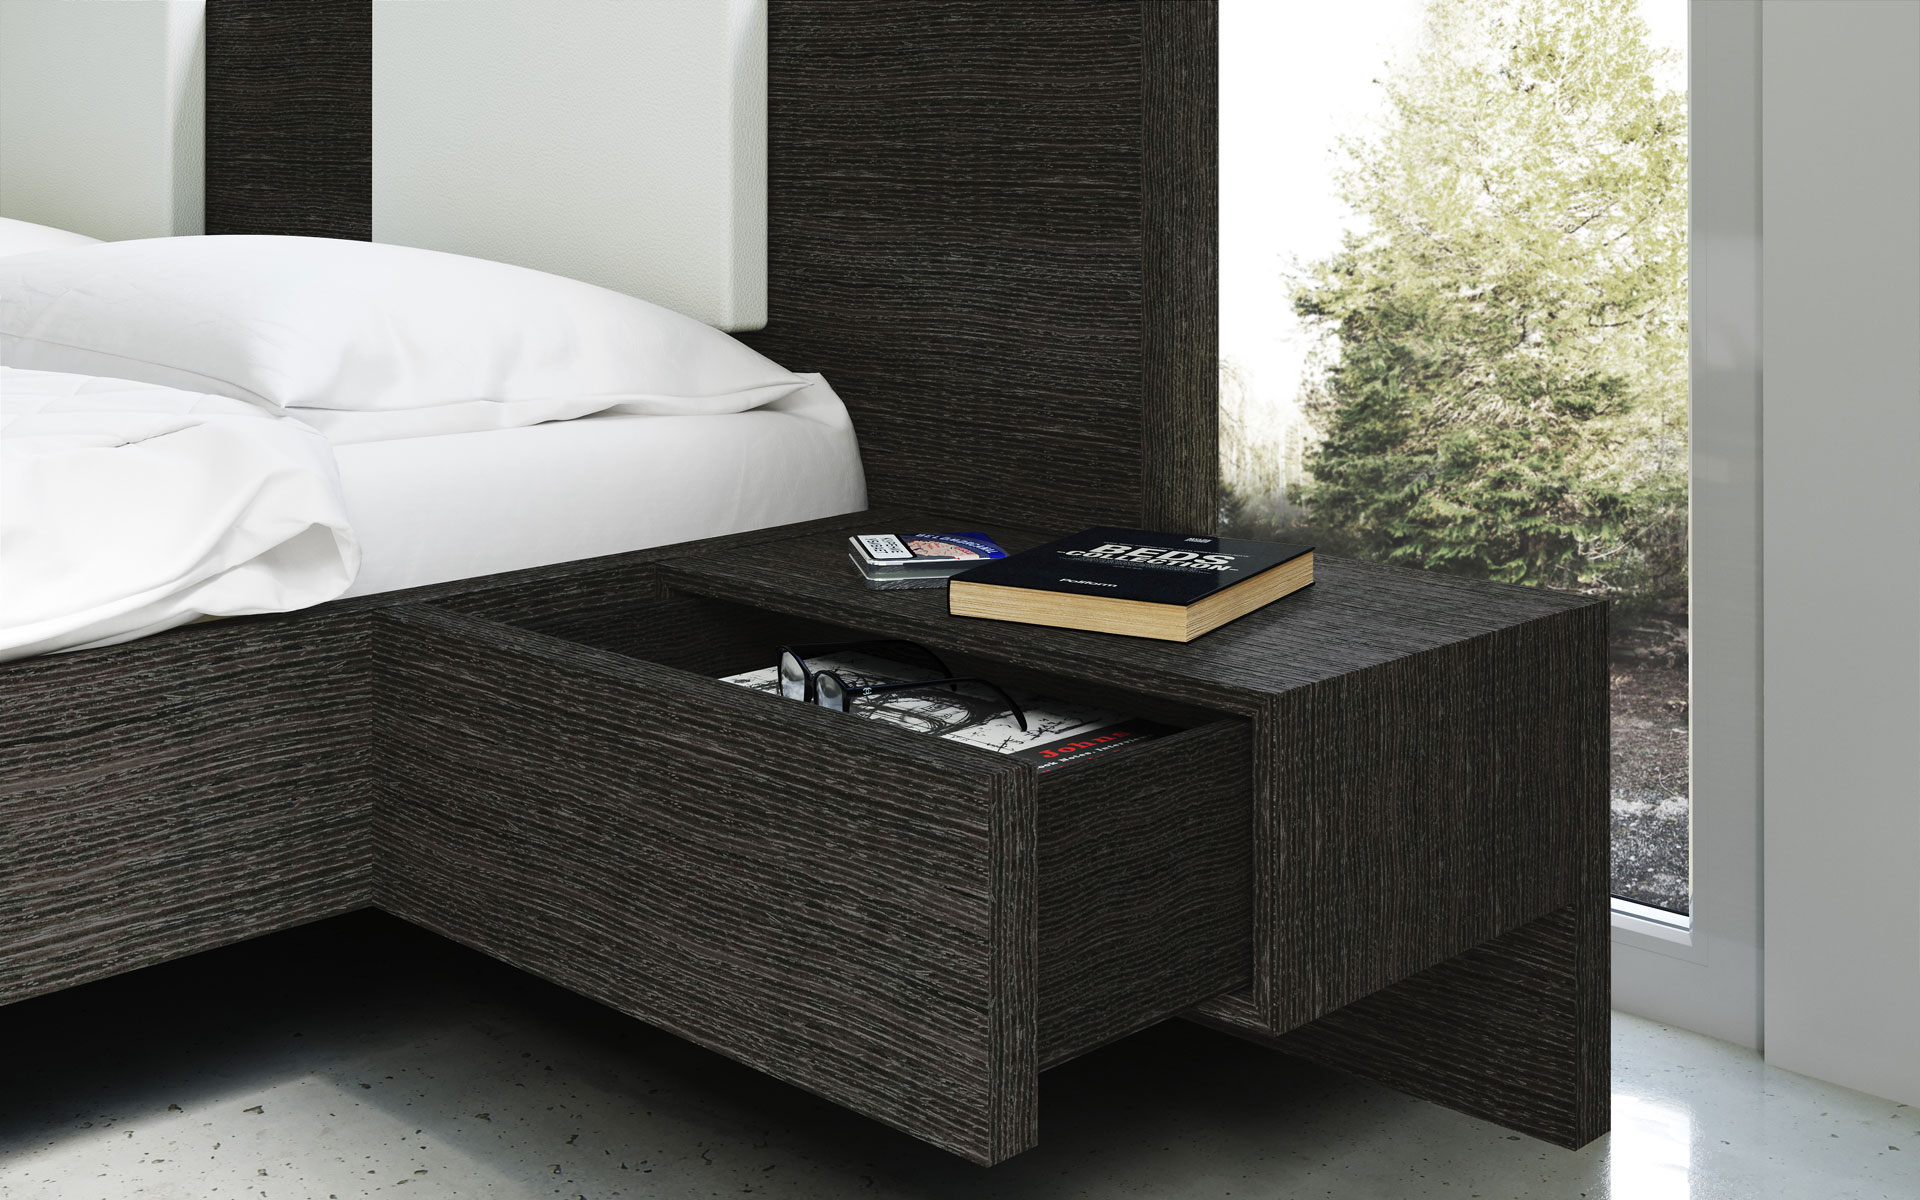 Modloft Originated And Continues To Manufacture Most Of Their Items From  Brazil. The Unique Designs And Styles Smoothly Blend And Adapt To Fit Any  Modern ...